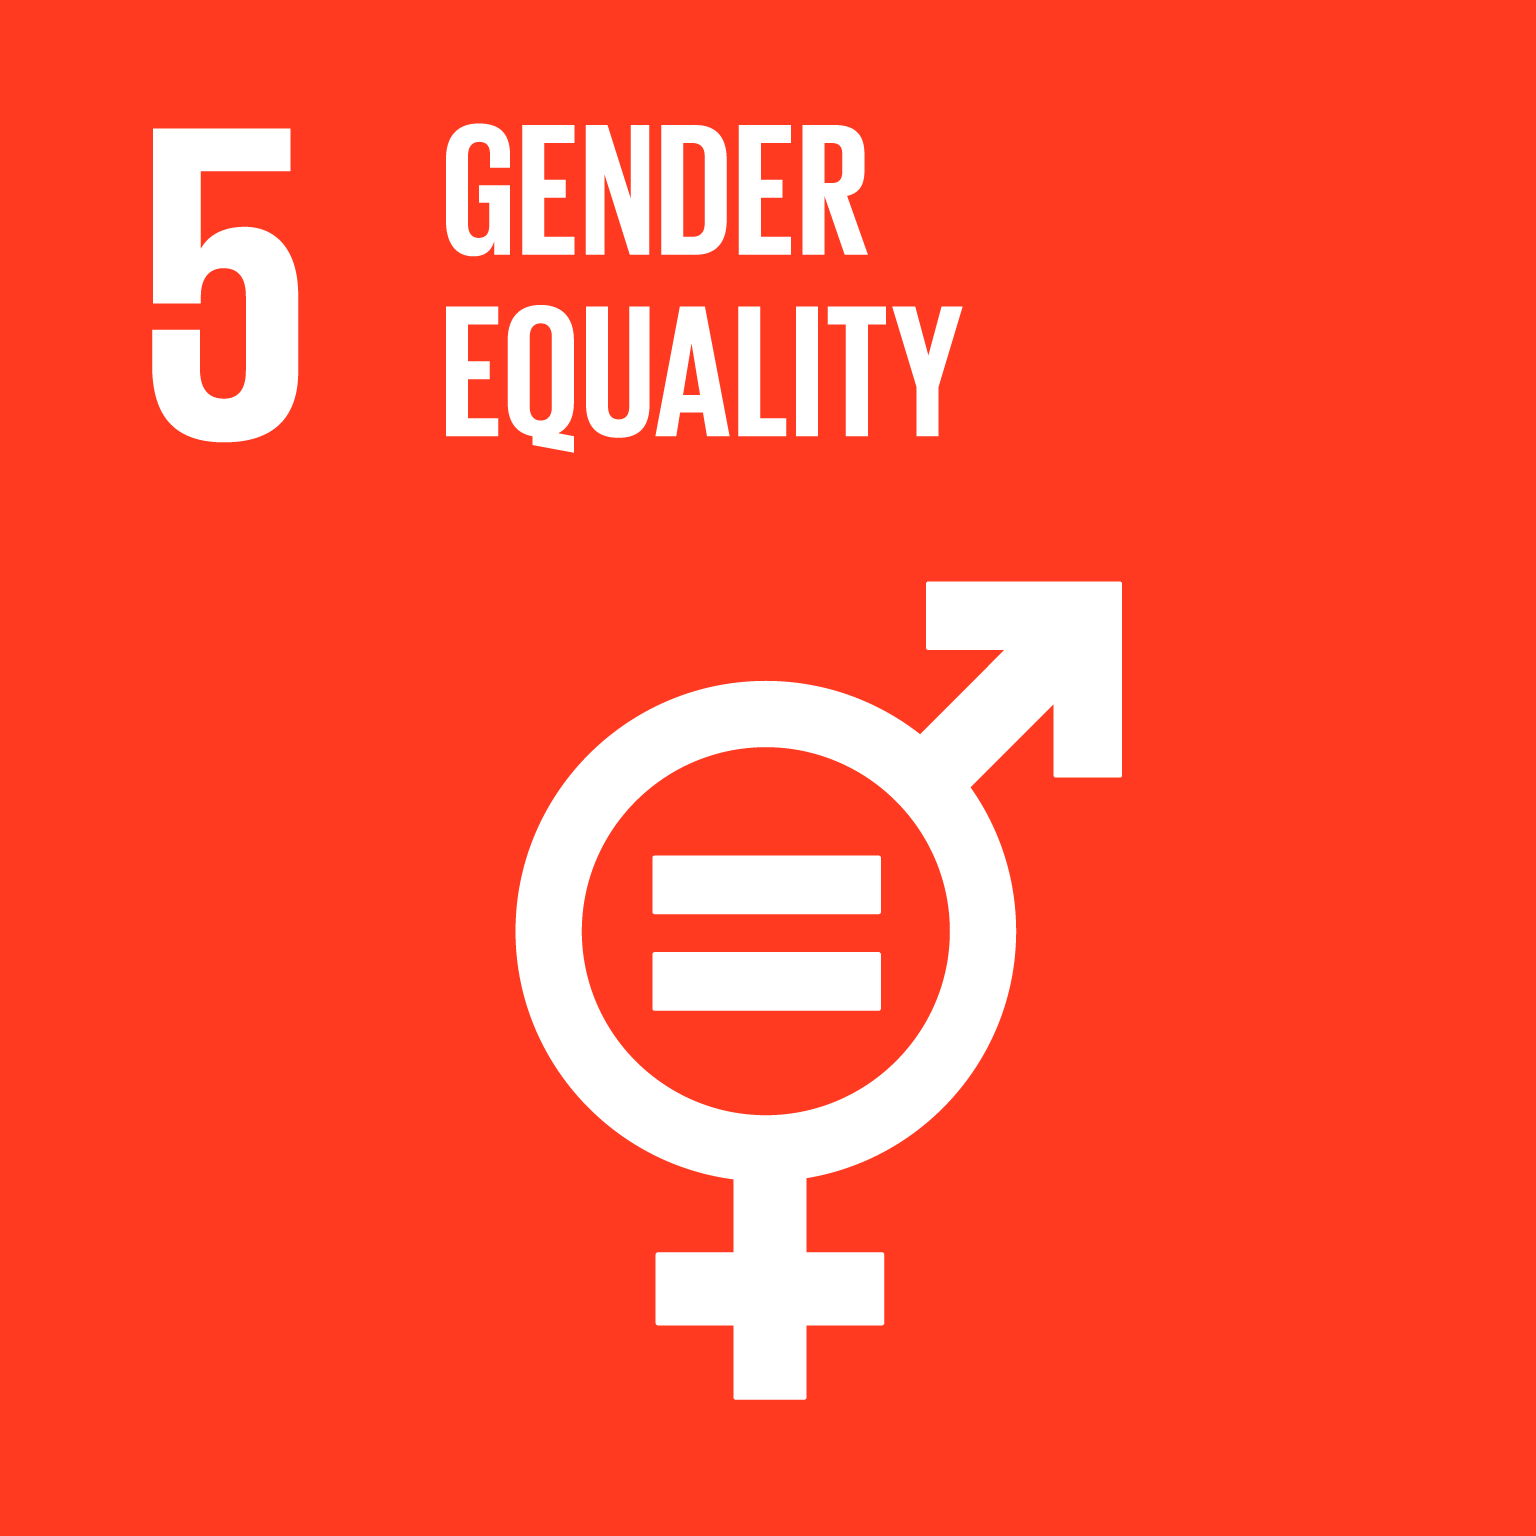 sdg icon #5 GENDER EQUALITY